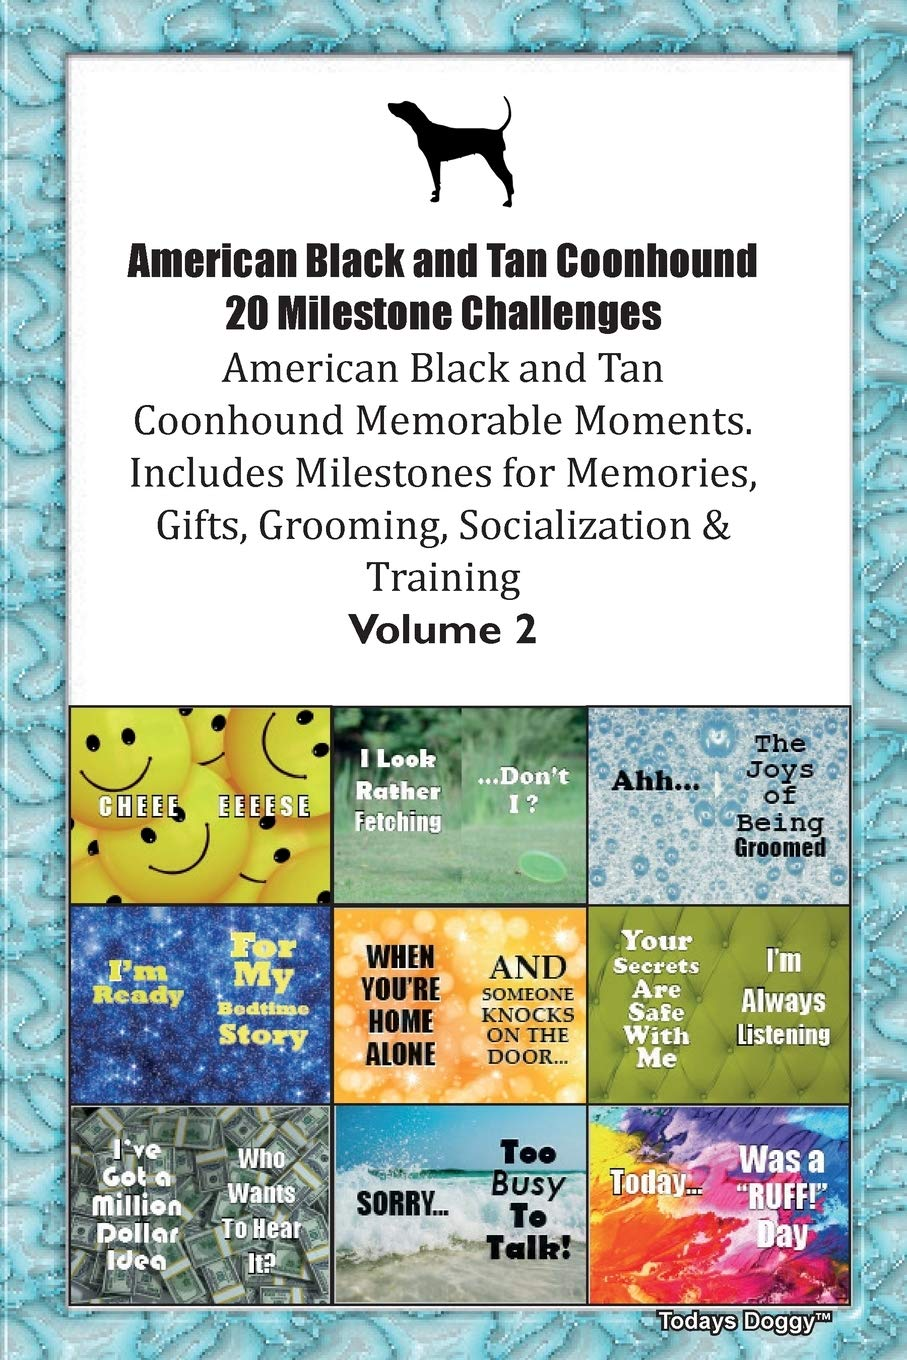 American Black and Tan Coonhound 20 Milestone Challenges American Black and Tan Coonhound Memorable Moments.Includes…